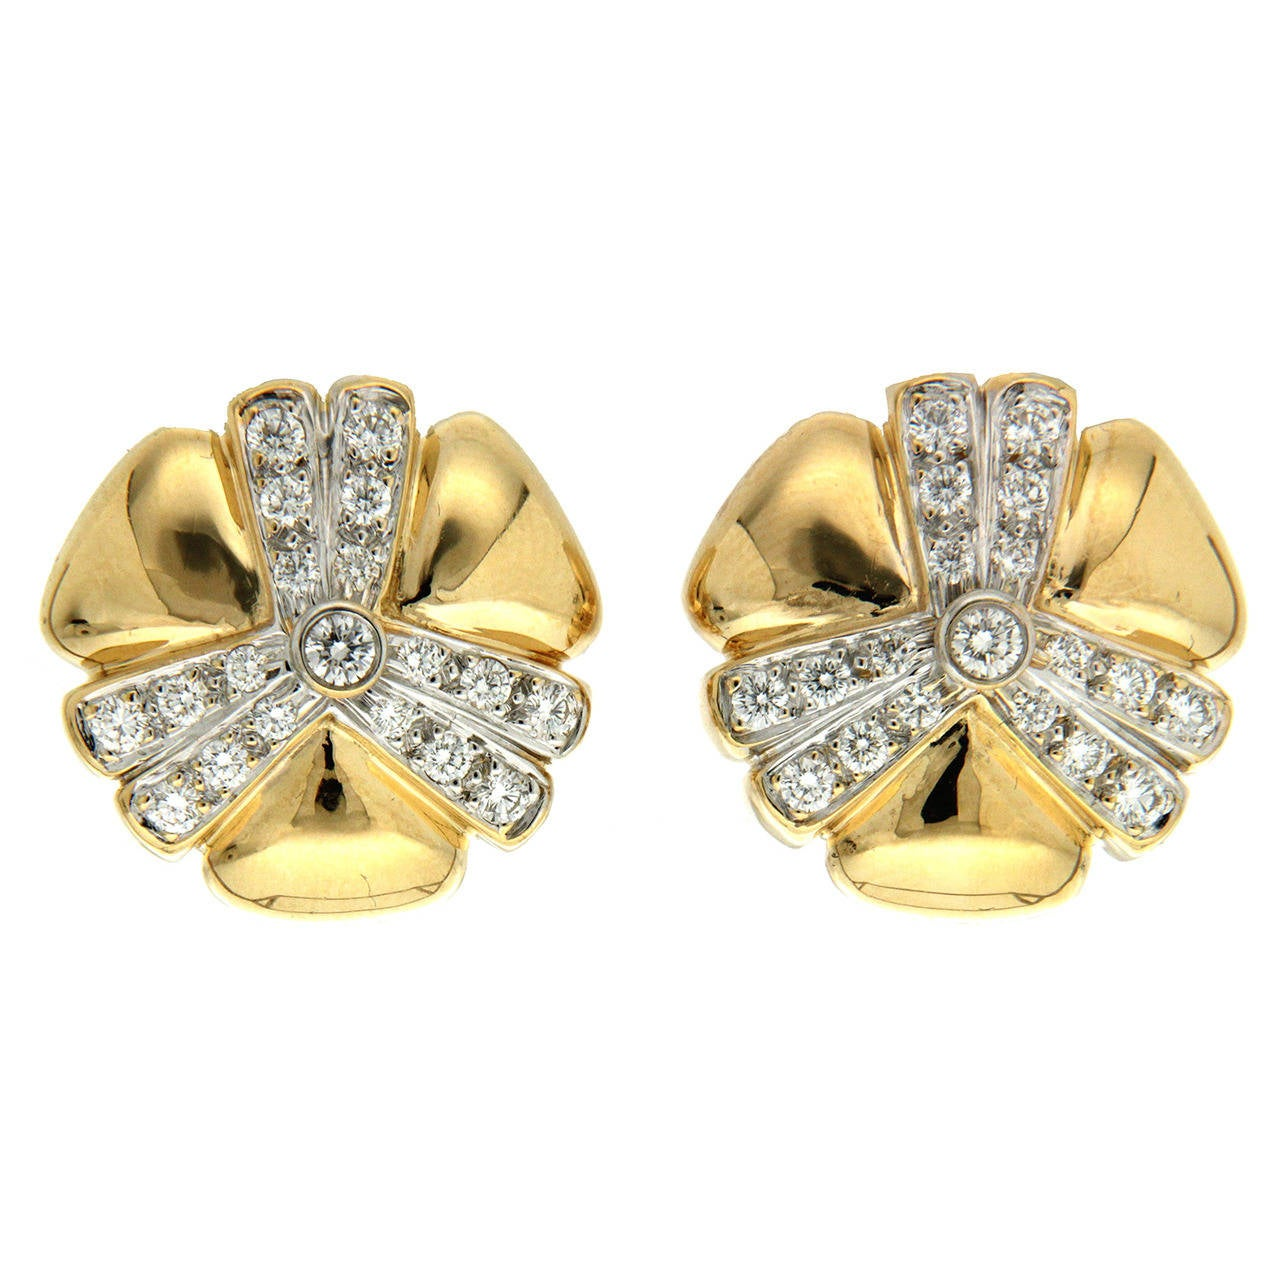 Valentin Magro Pave Diamond Gold Mercedes Earrings